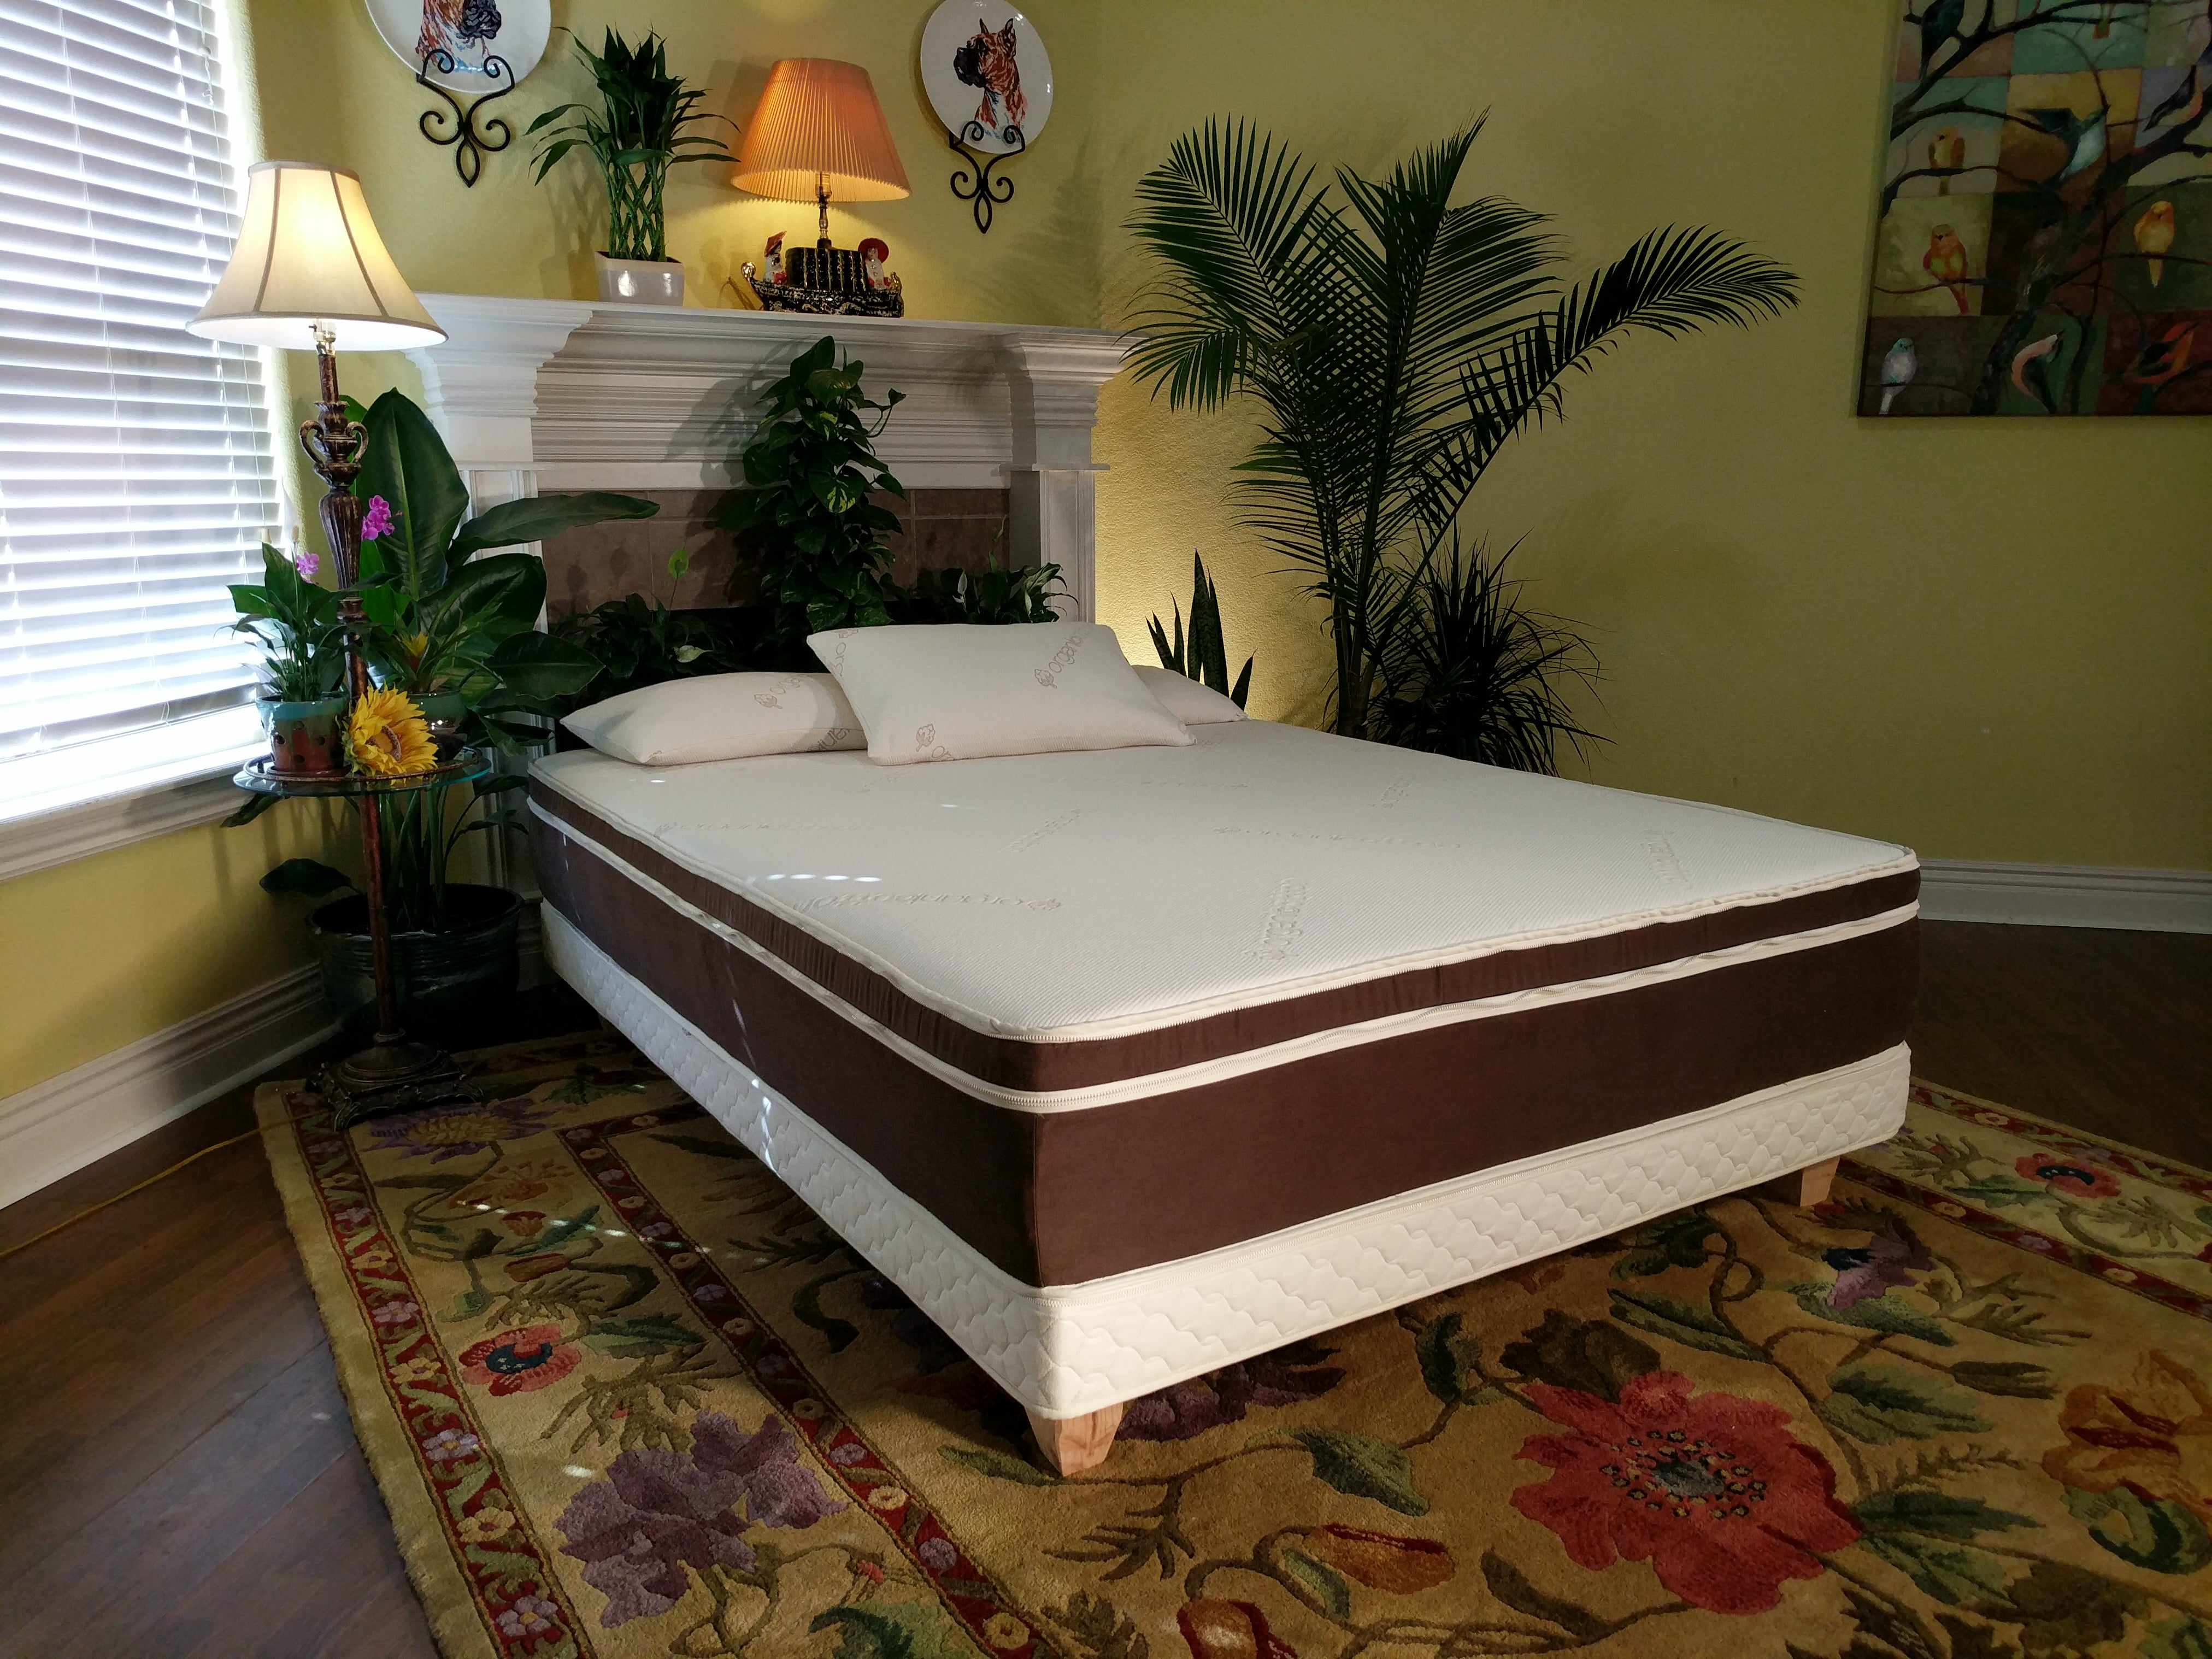 - Organic Voyager 3-Layer Mattress layers can be easily moved around to make it firmer or softer on each side in Queen, King, and Cal-King sizes, providing you the ultimate in sleep-surface customization.